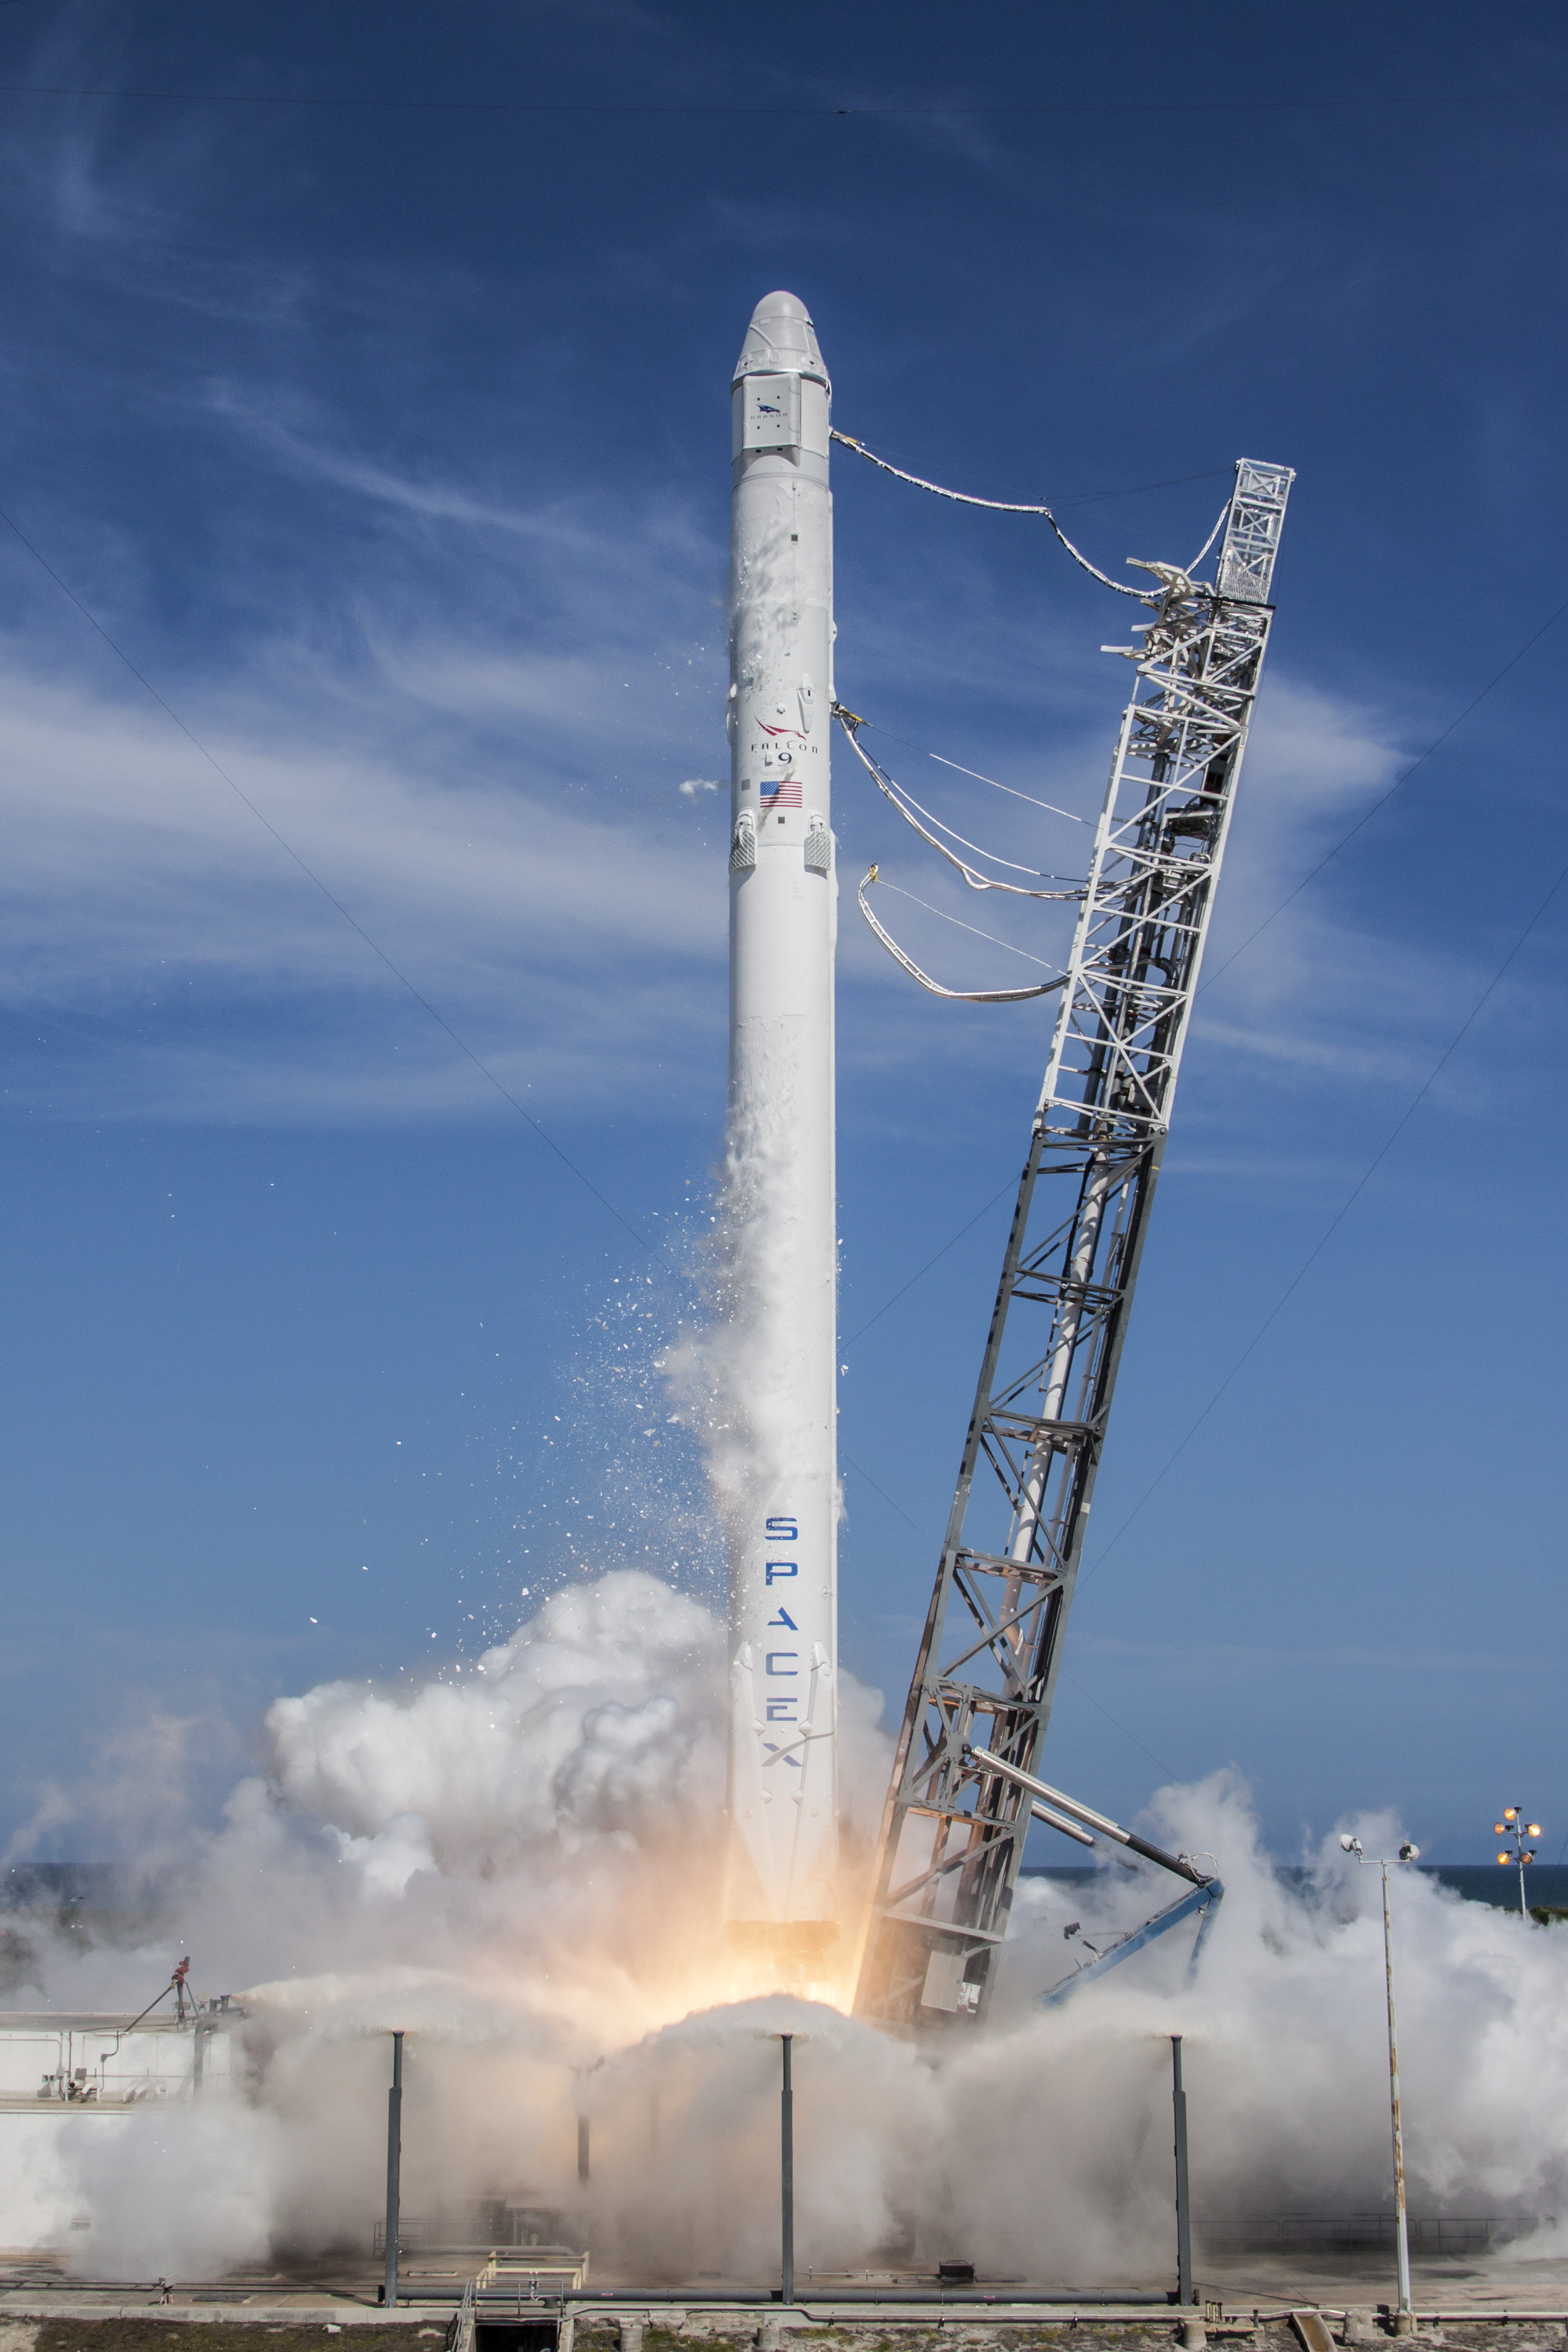 CRS-6 (SpaceX)